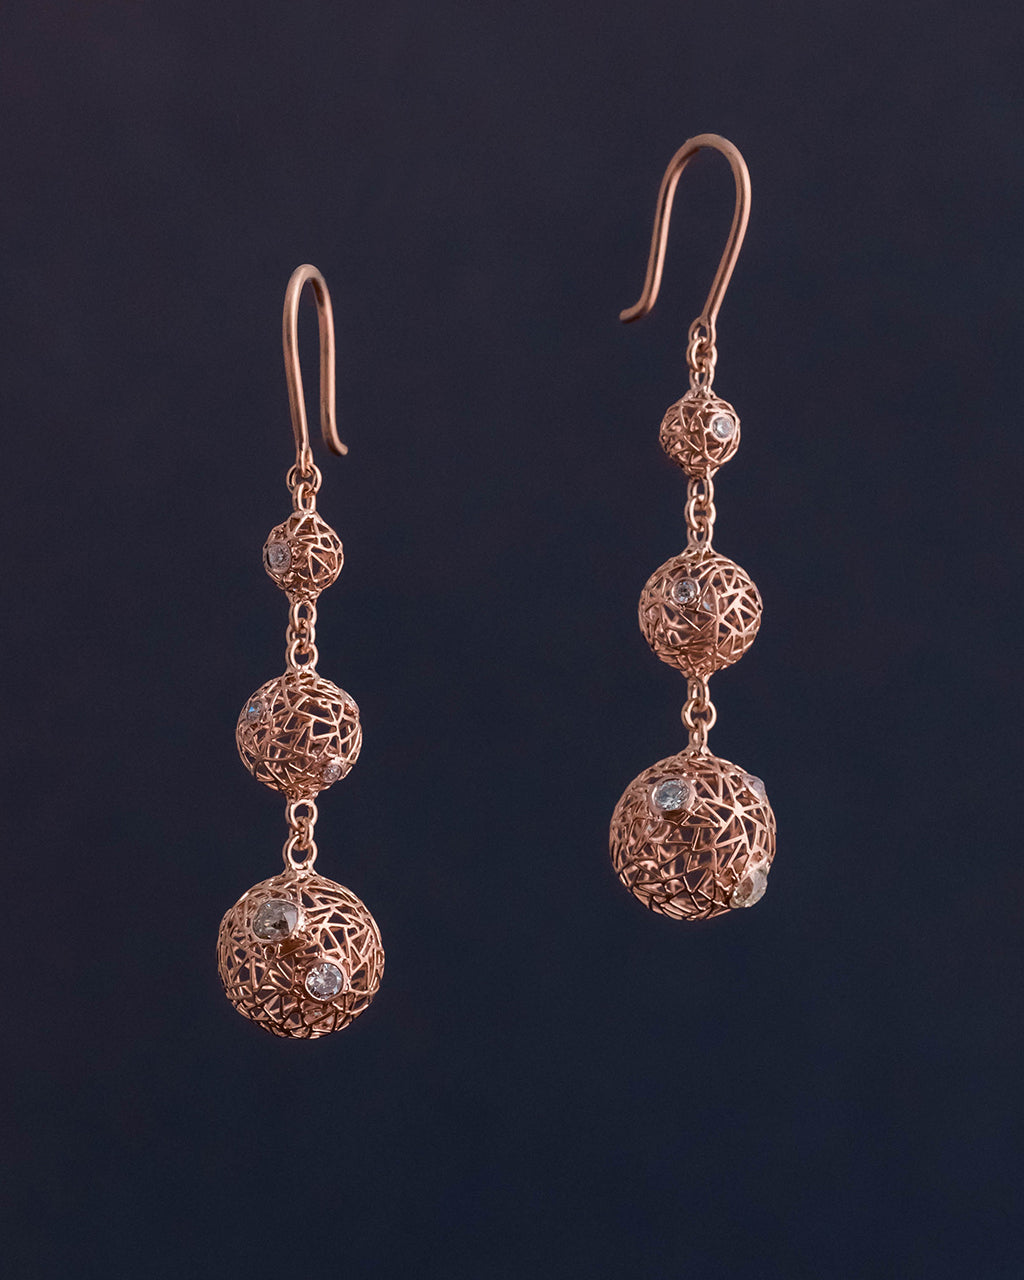 Handmade gold wire jewelry, unique diamond earrings.